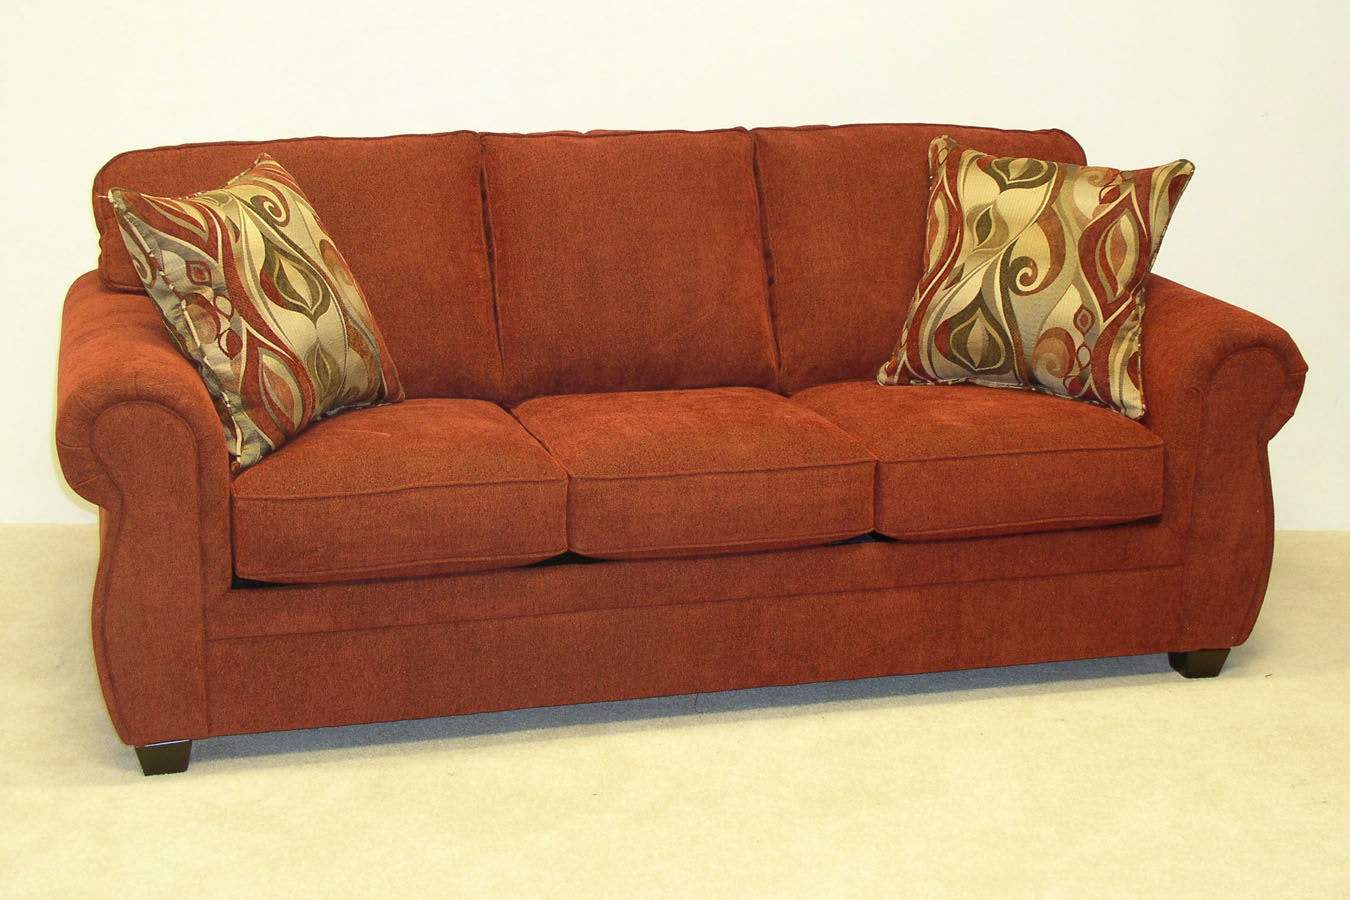 Sofa X Long Lacrosse Living Room 85 Queen Sleeper 7 X Long 371 607